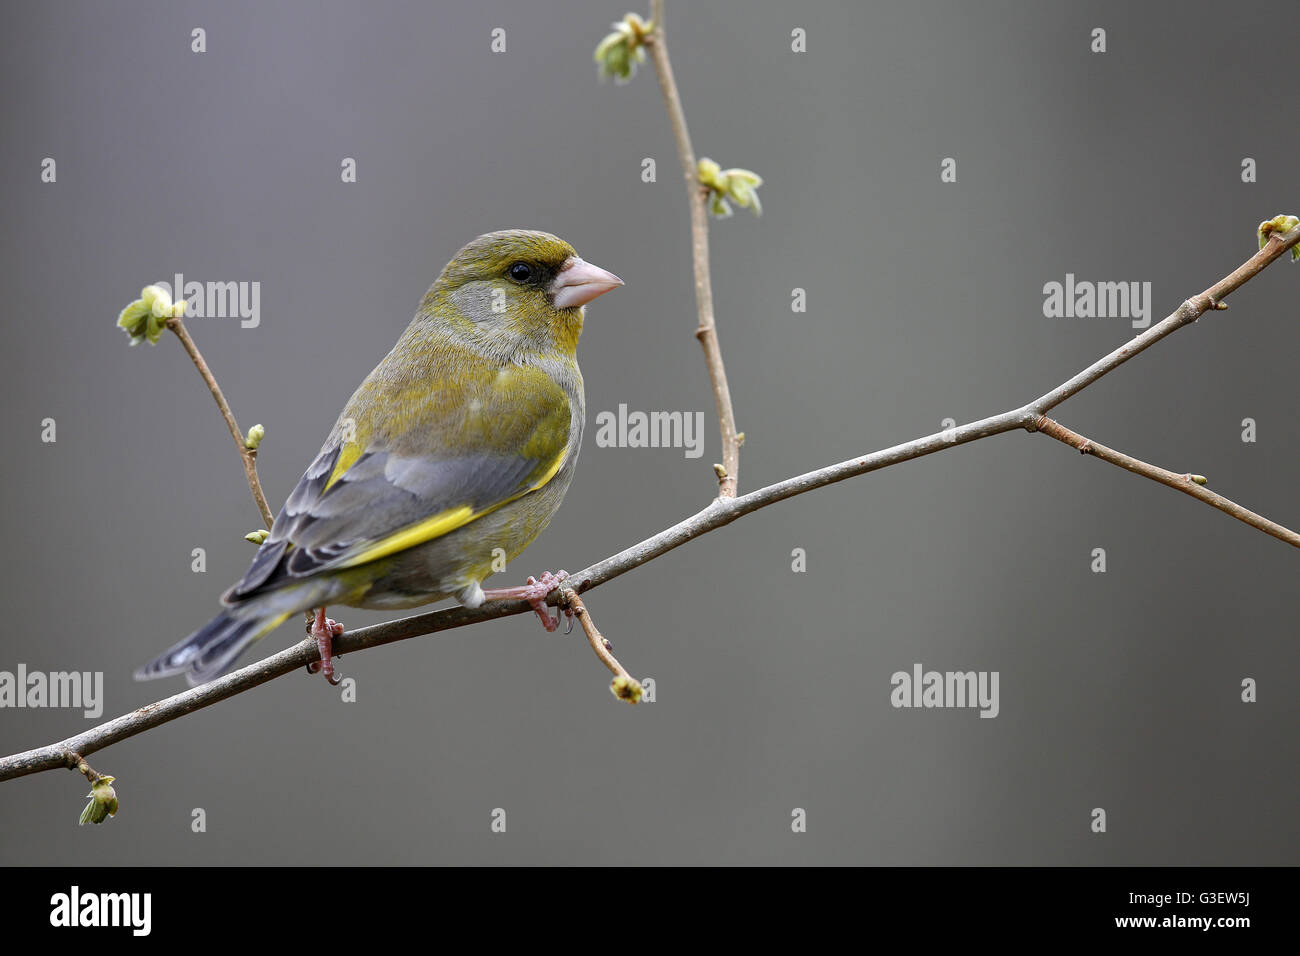 European Greenfinch, Carduelis chloris, male perched on Spring twig - Stock Image